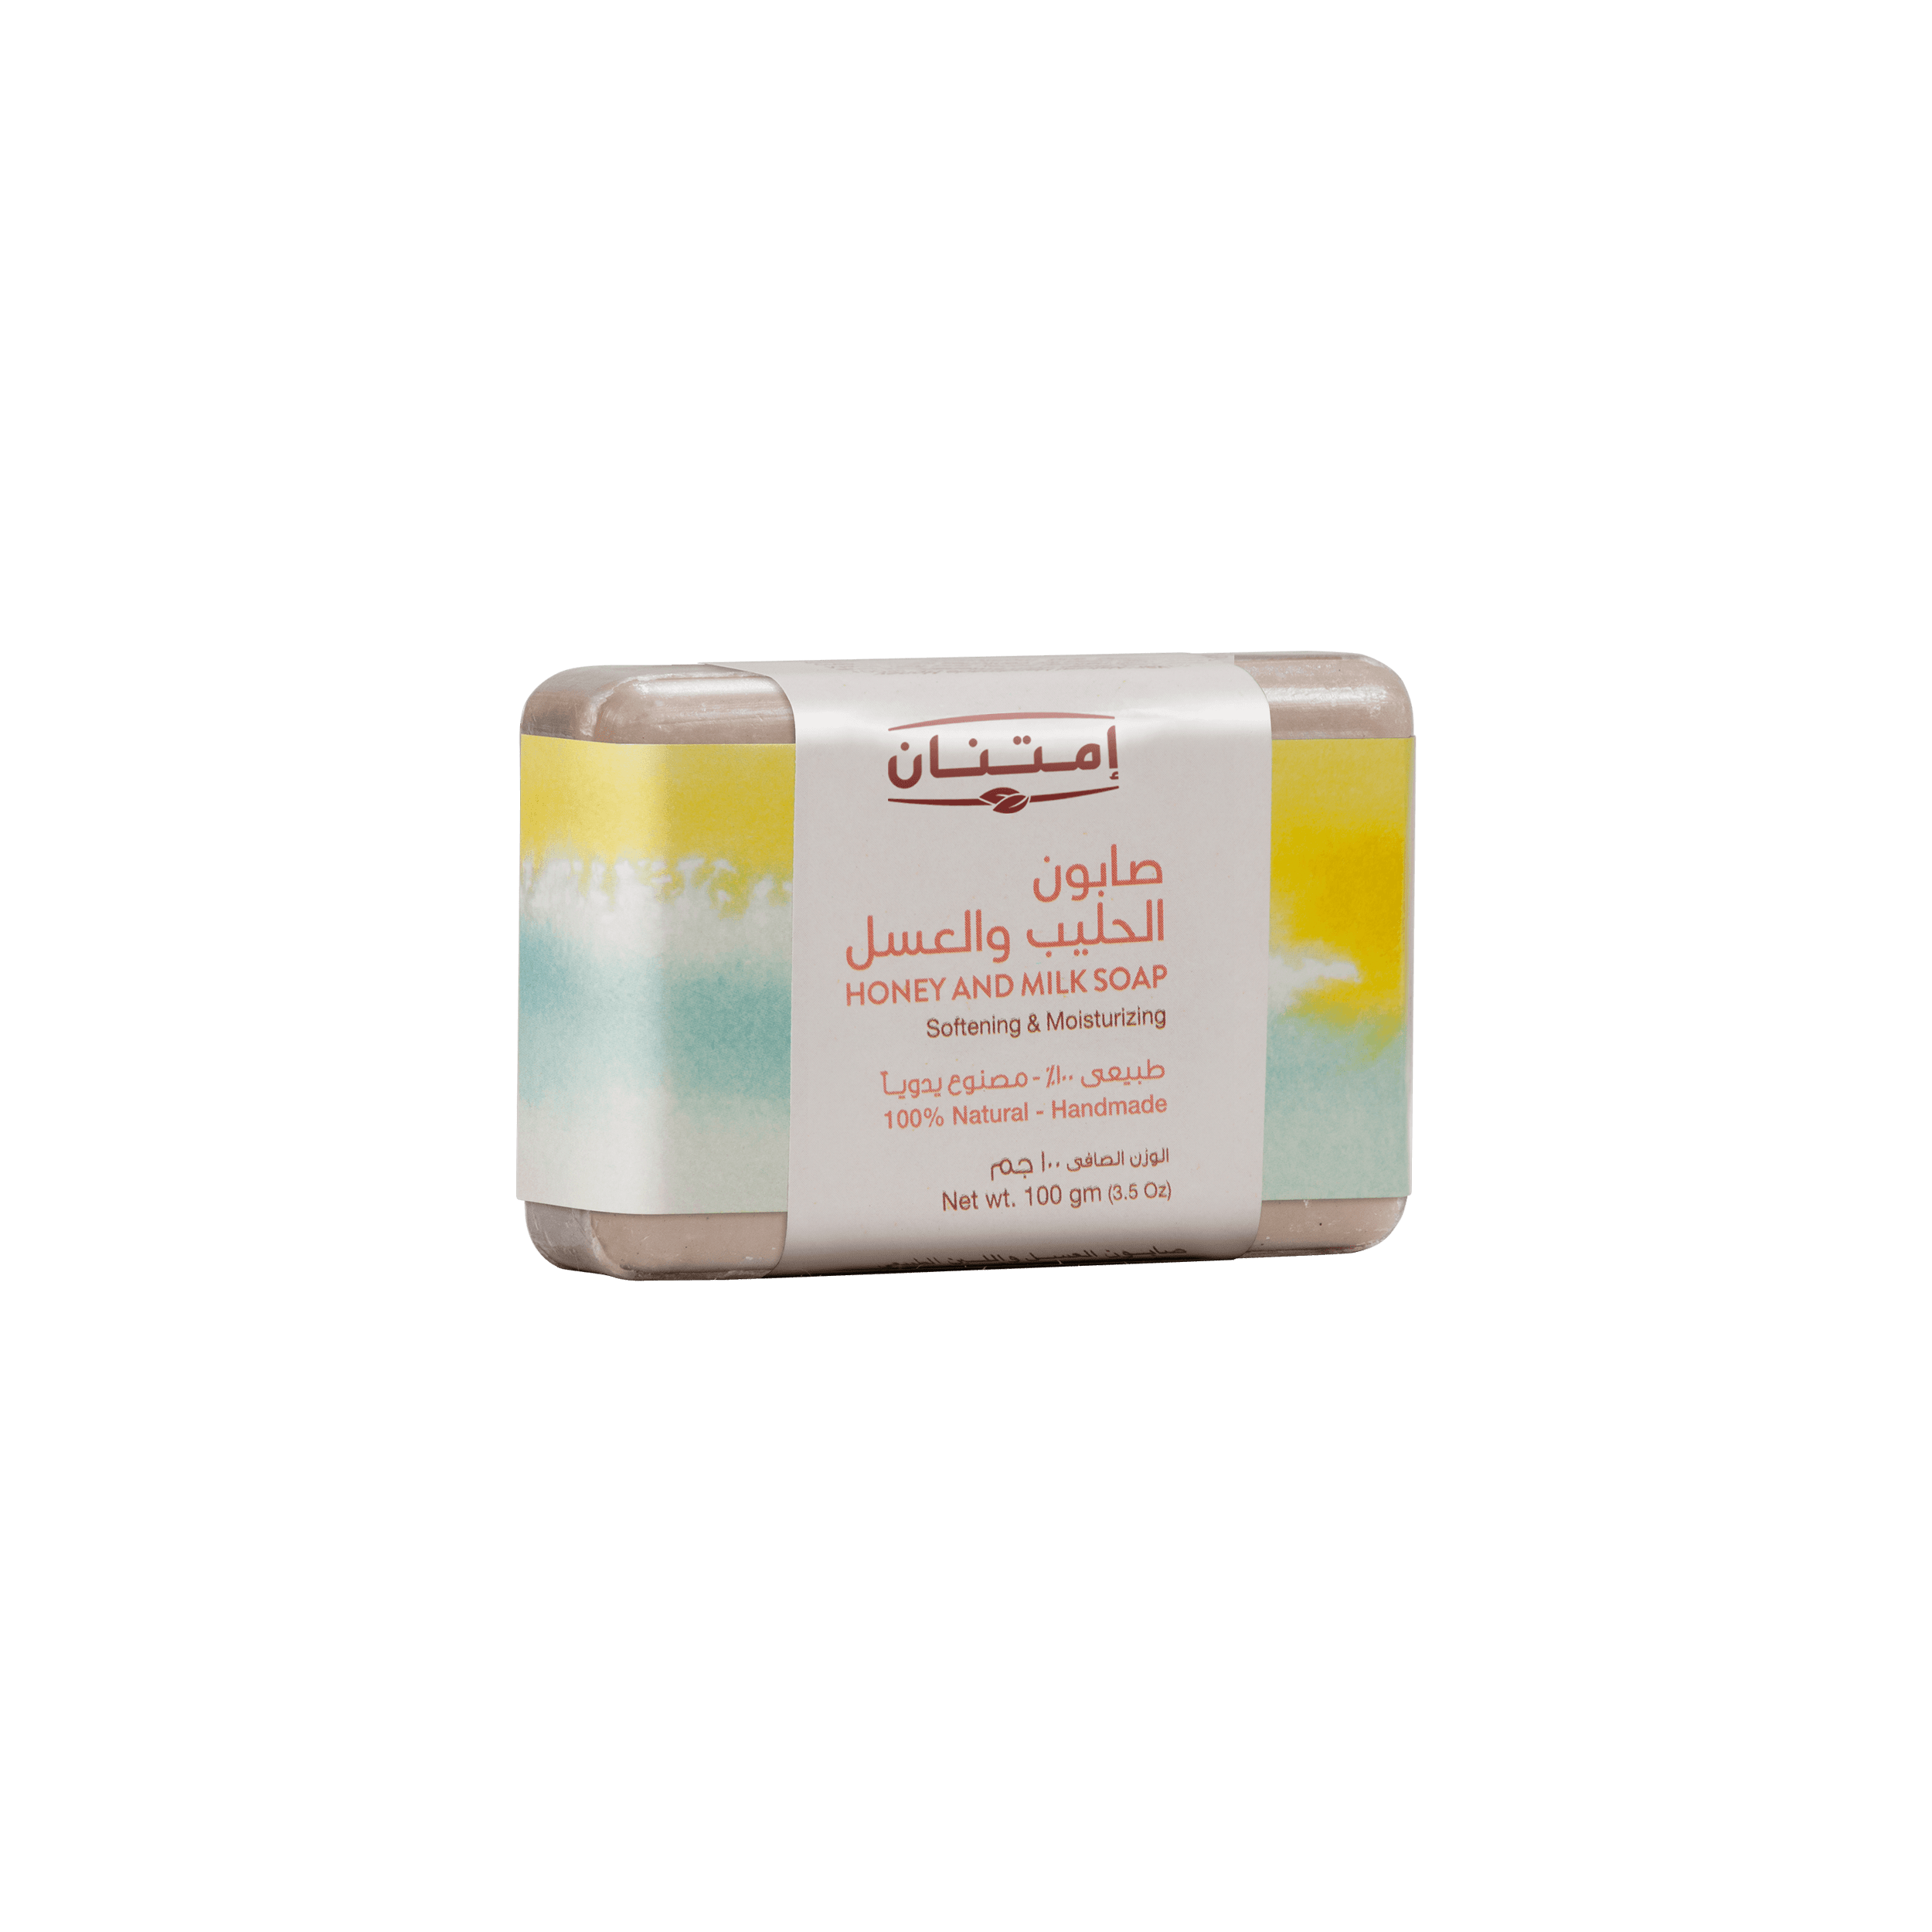 Honey & Milk Soap • Bath & Body • Source Beauty Egypt